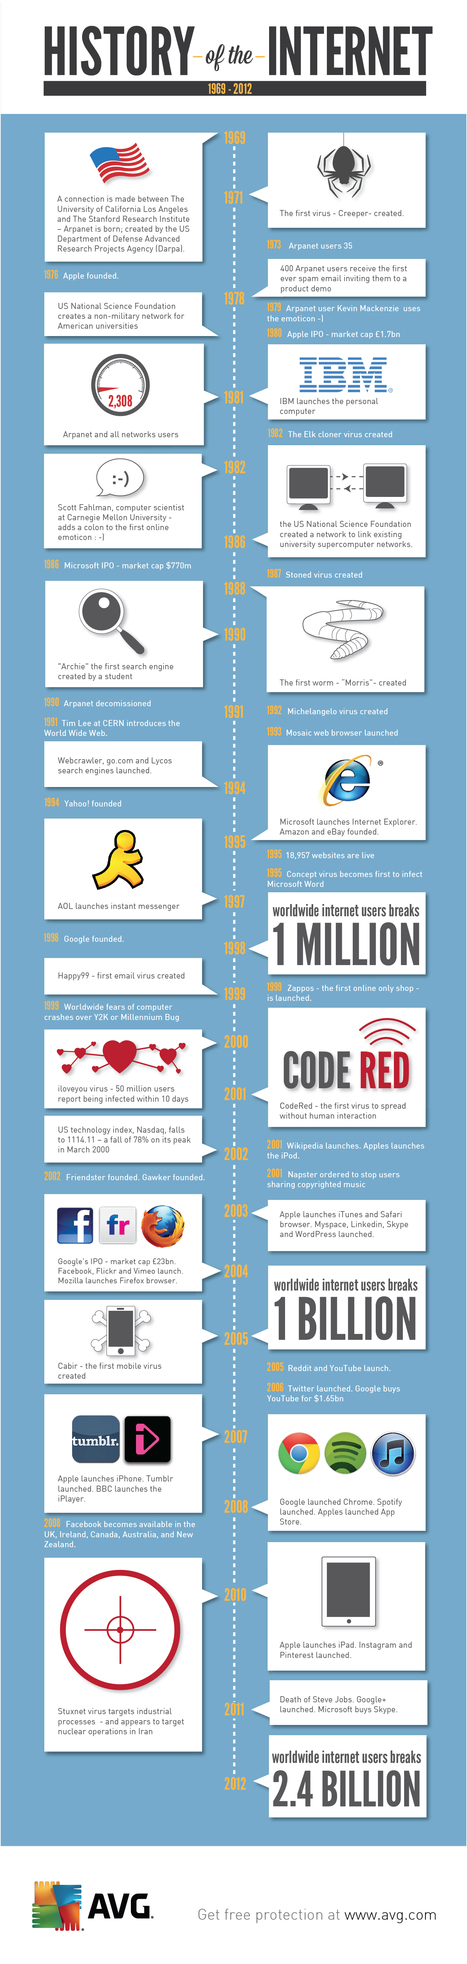 AVG Antivirus & Security Software - The History of the Internet [Infographic] | School Psychology Tech | Scoop.it